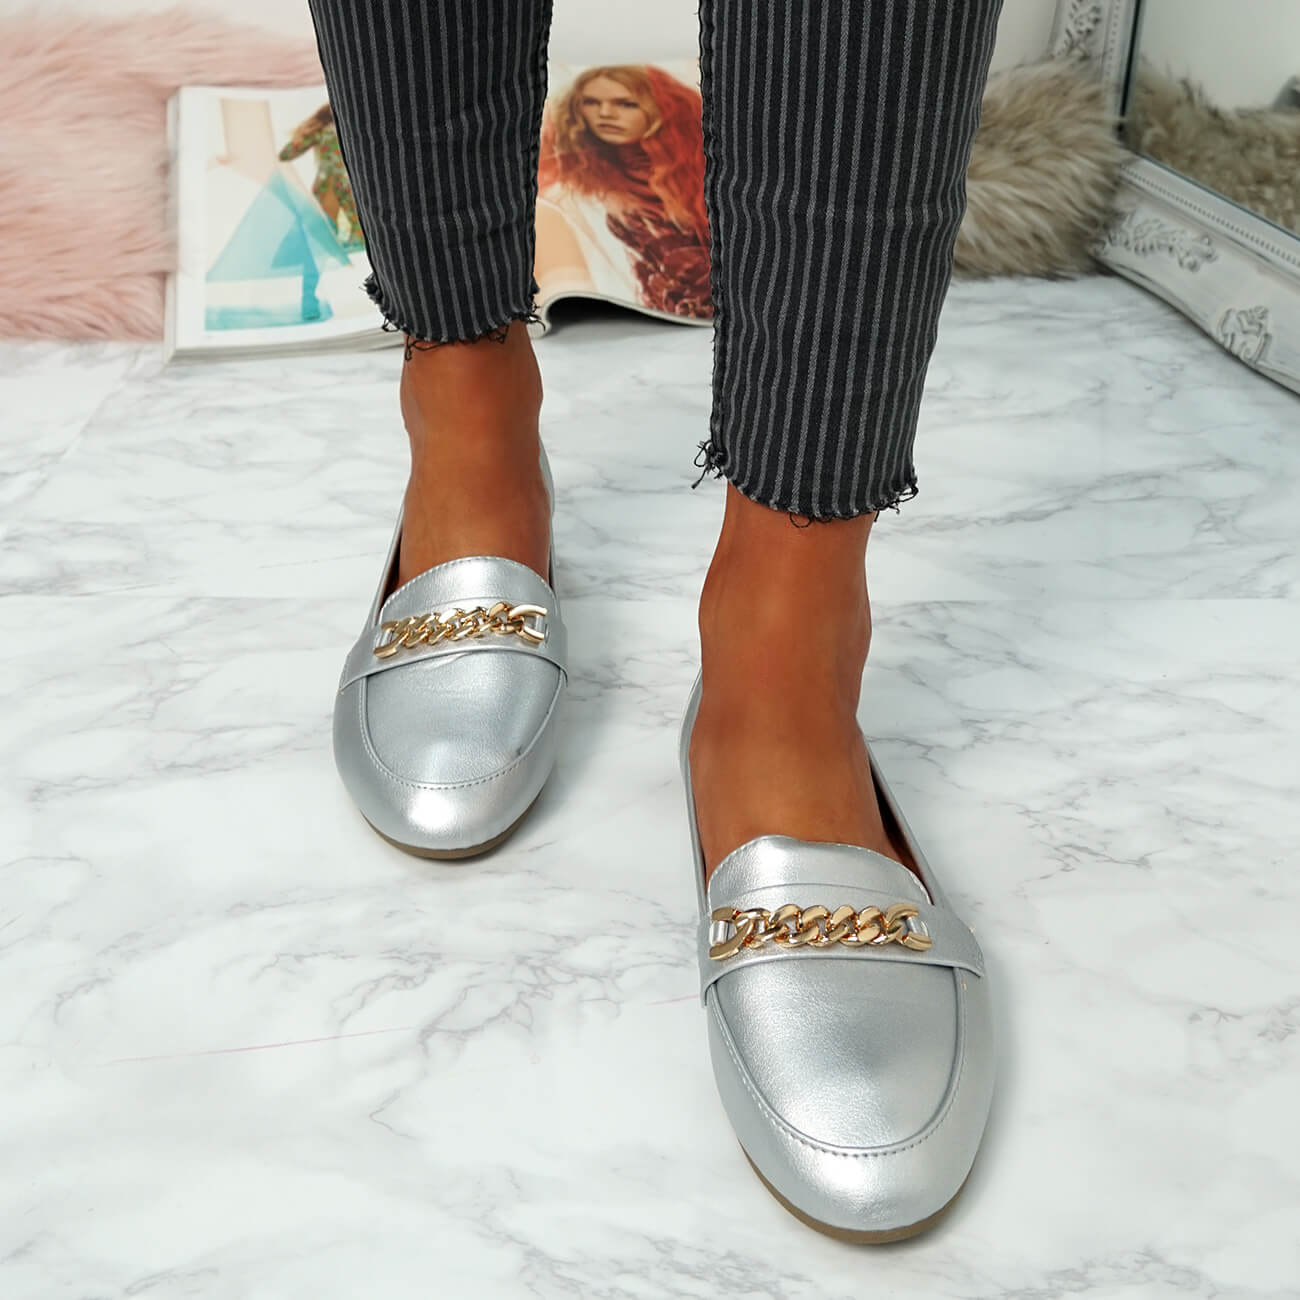 WOMENS-LADIES-CHAIN-SLIP-ON-BALLERINA-LOAFERS-BALLET-DOLLY-PUMPS-SHOES-SIZE thumbnail 37